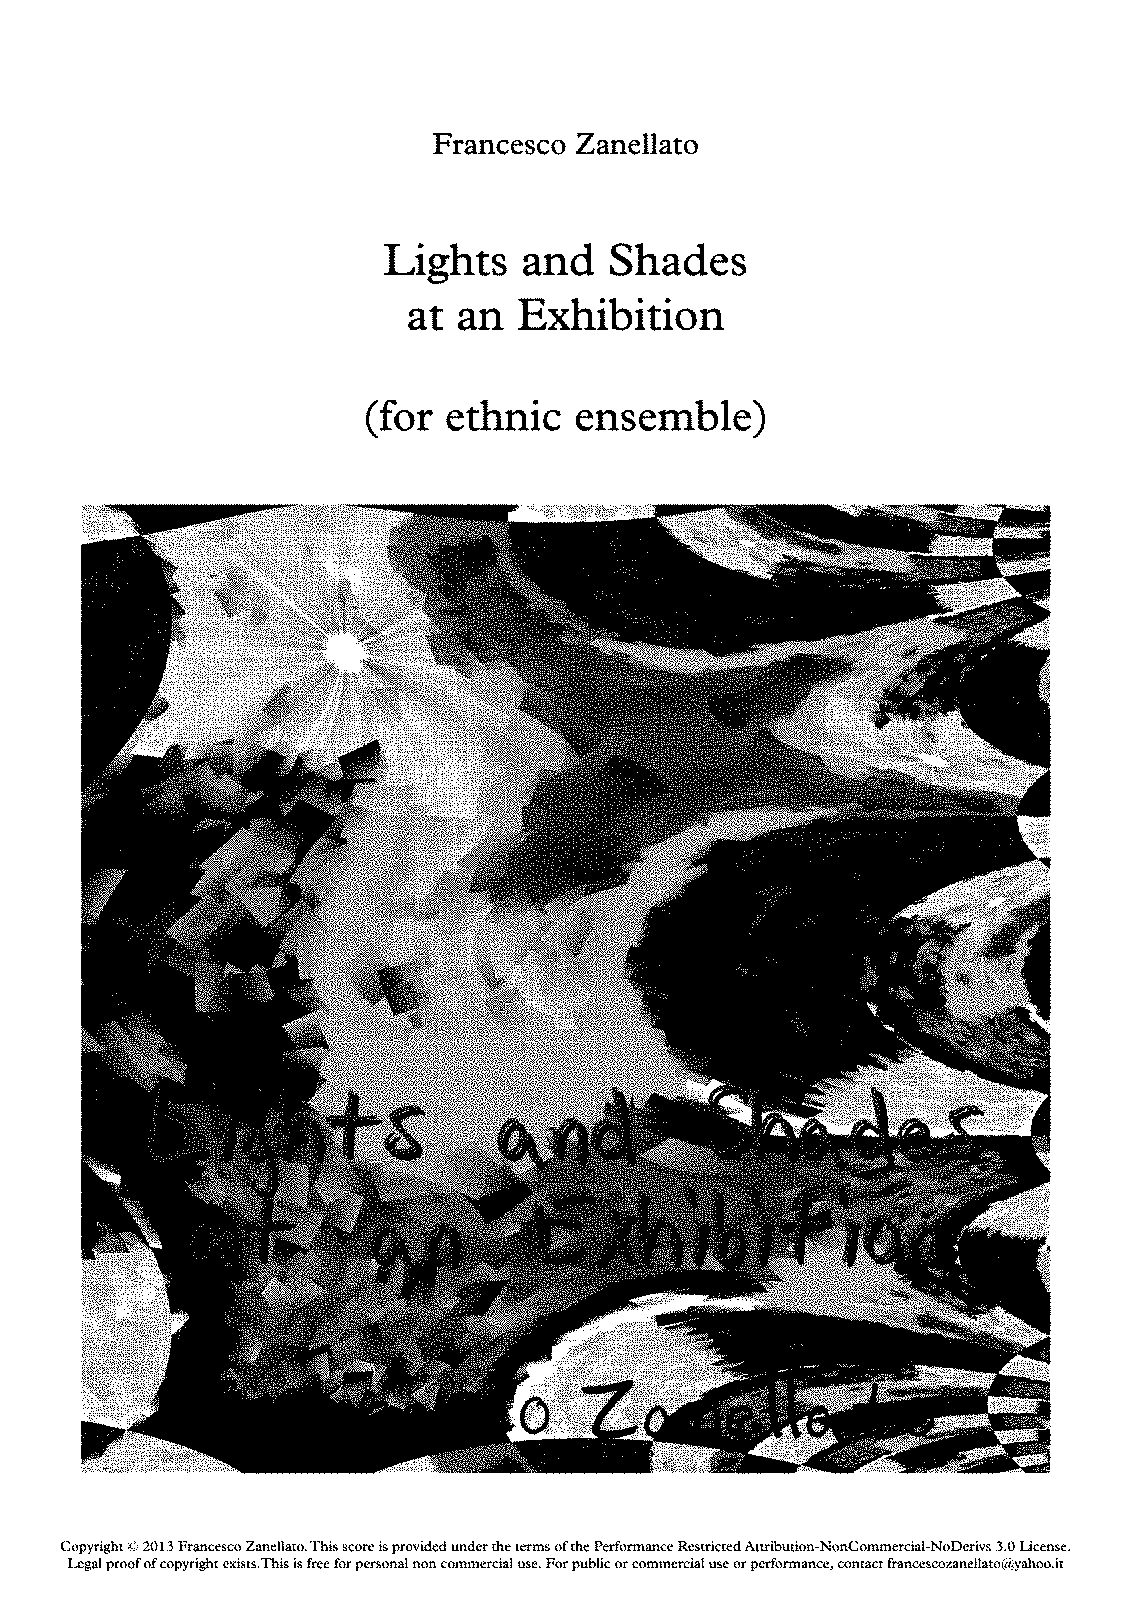 PMLP451461-Francesco Zanellato - Lights and Shades at an Exhibition.pdf